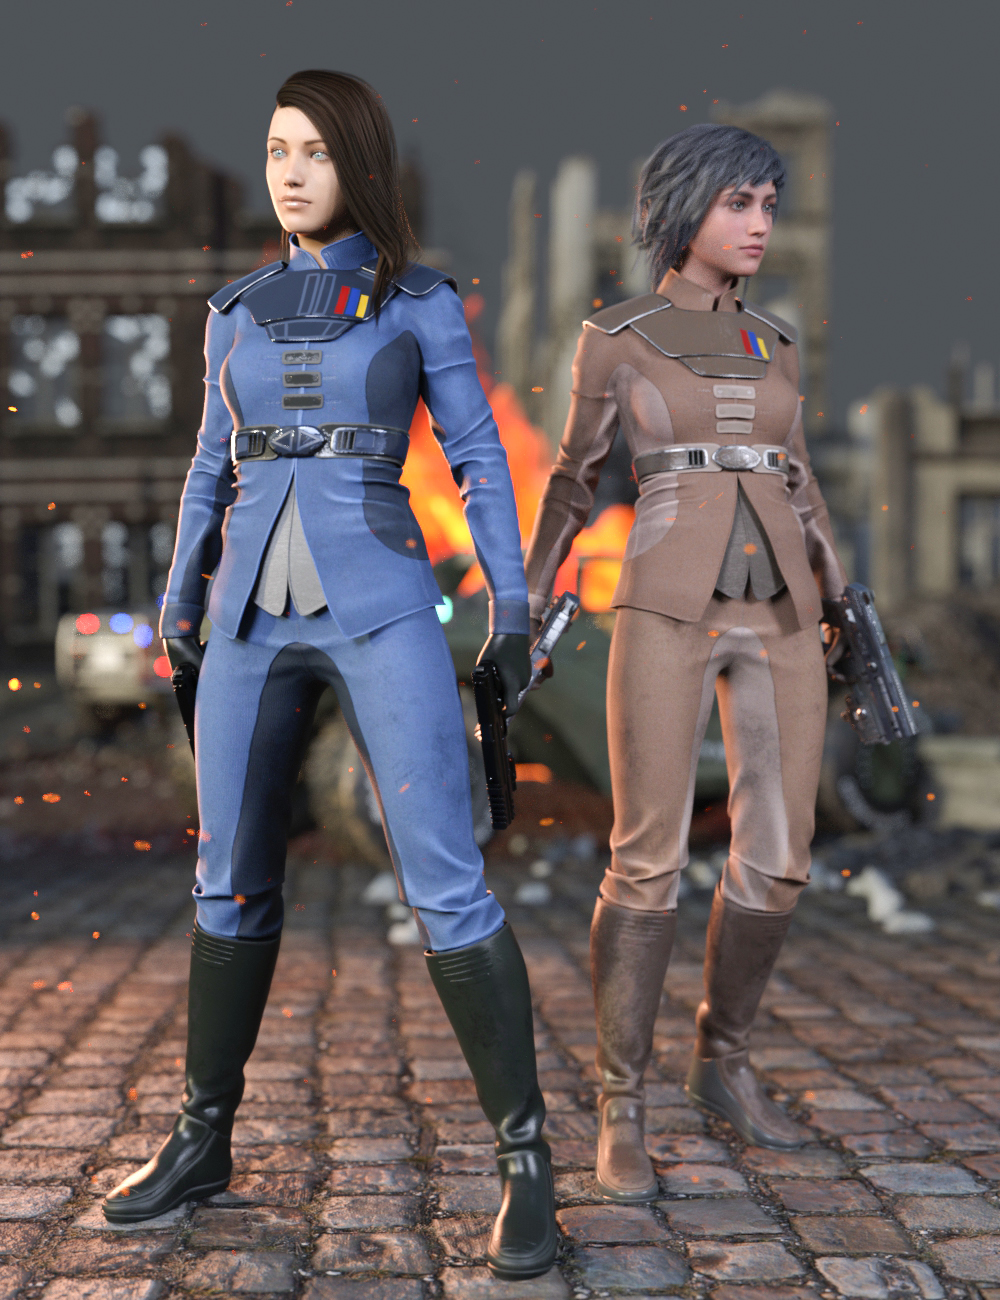 Sci-Fi Sergeant Outfit for Genesis 8.1 Females by: Yura, 3D Models by Daz 3D